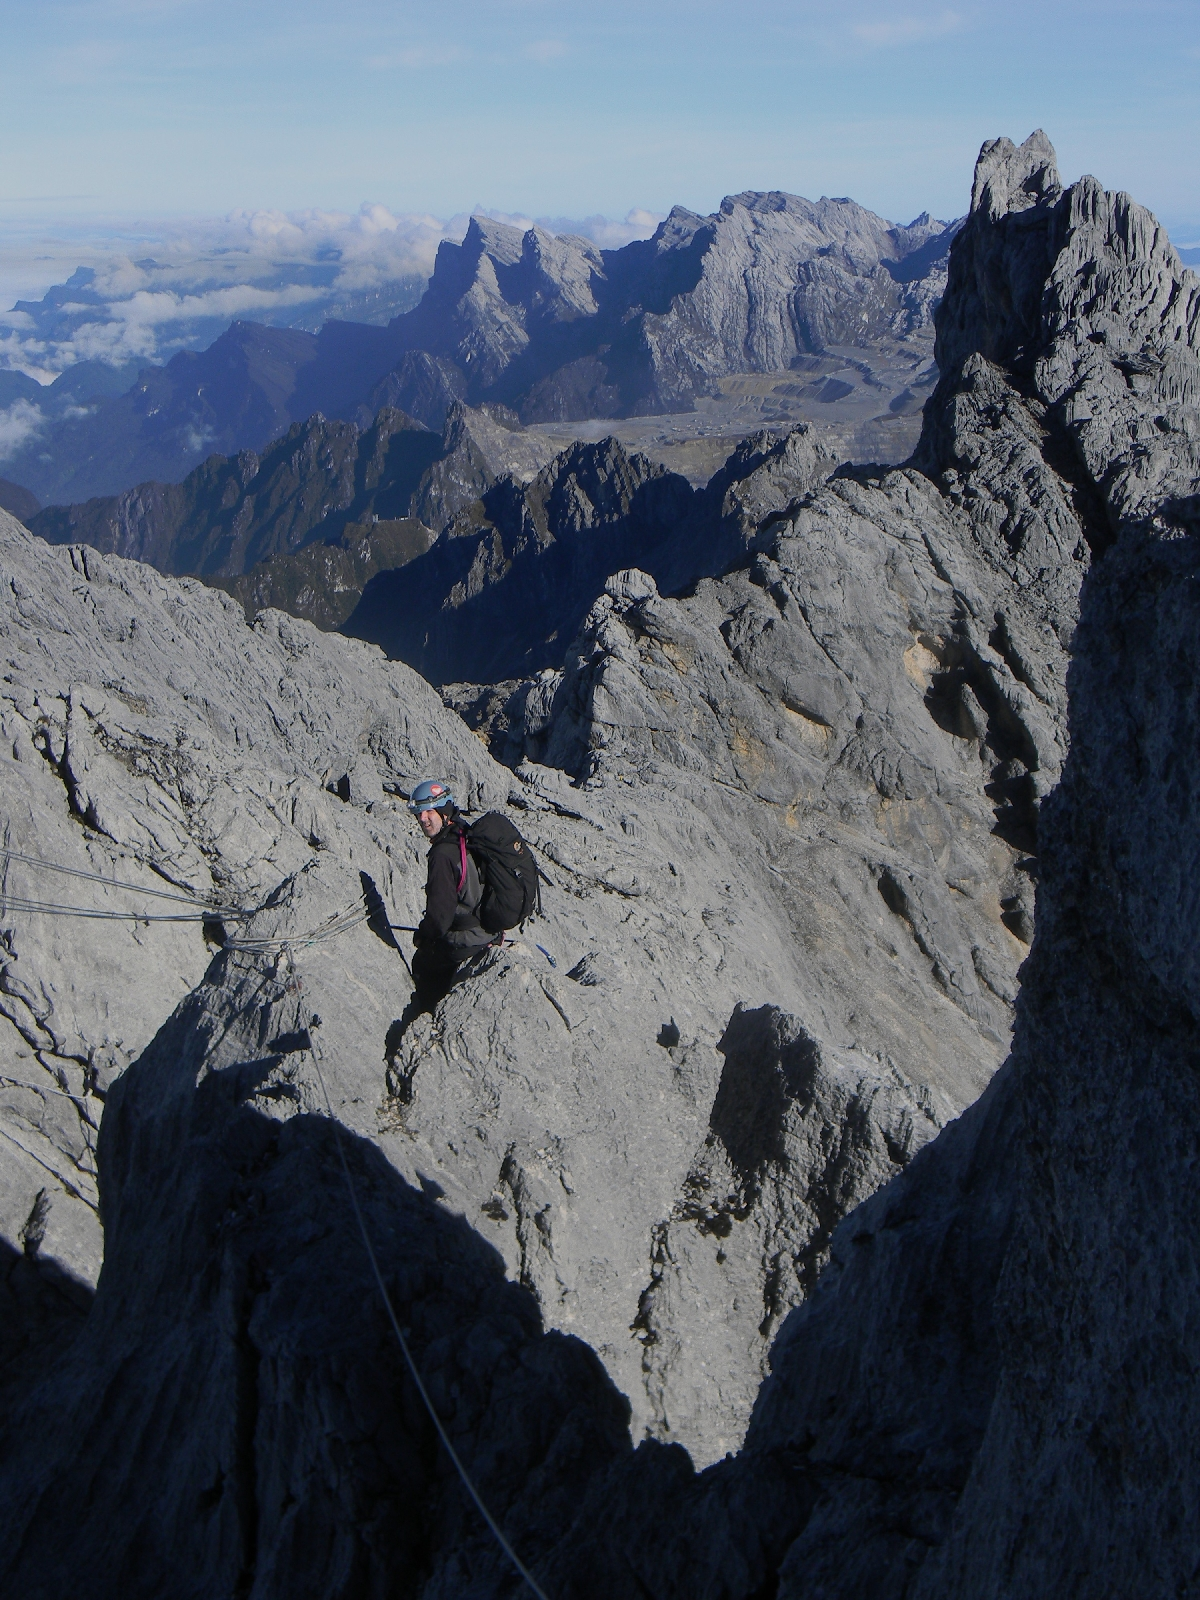 Carstensz summit ridge looking west (Idenberg Top) (Robert Cassady, 2010)